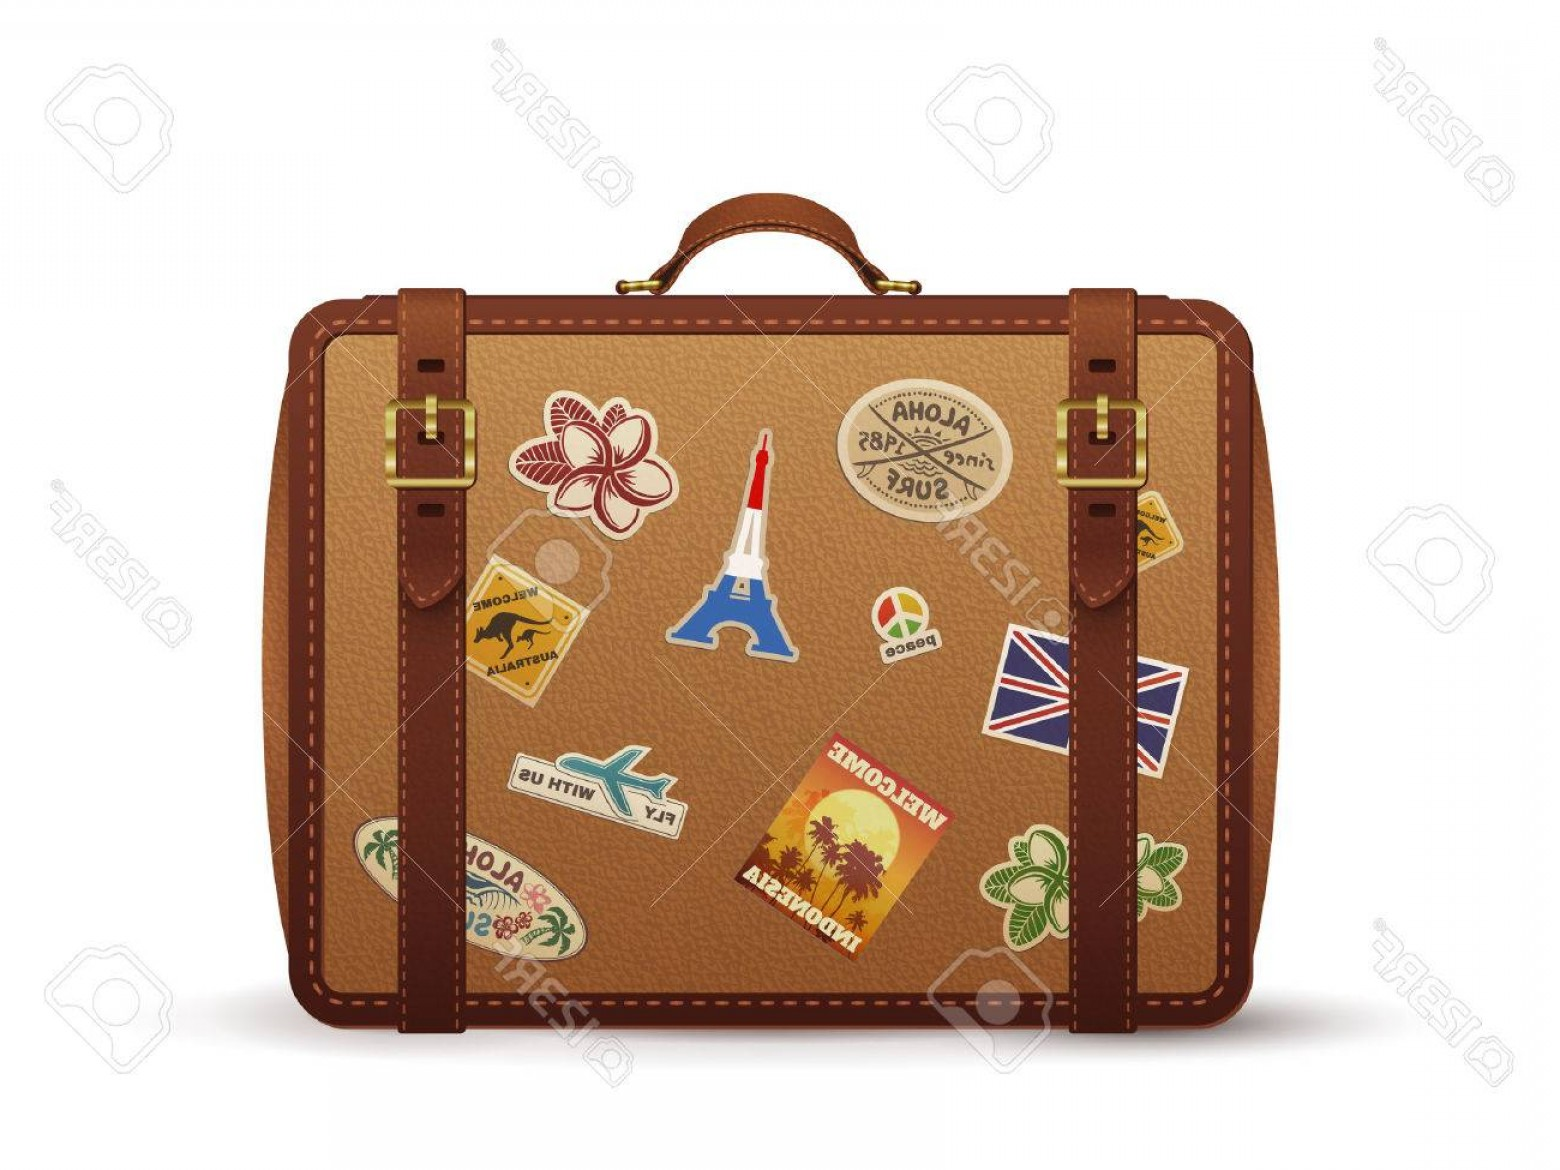 Vintage Luggage Vector: Photostock Vector Old Vintage Leather Suitcase With Travel Stickers Illustration Isolated On White